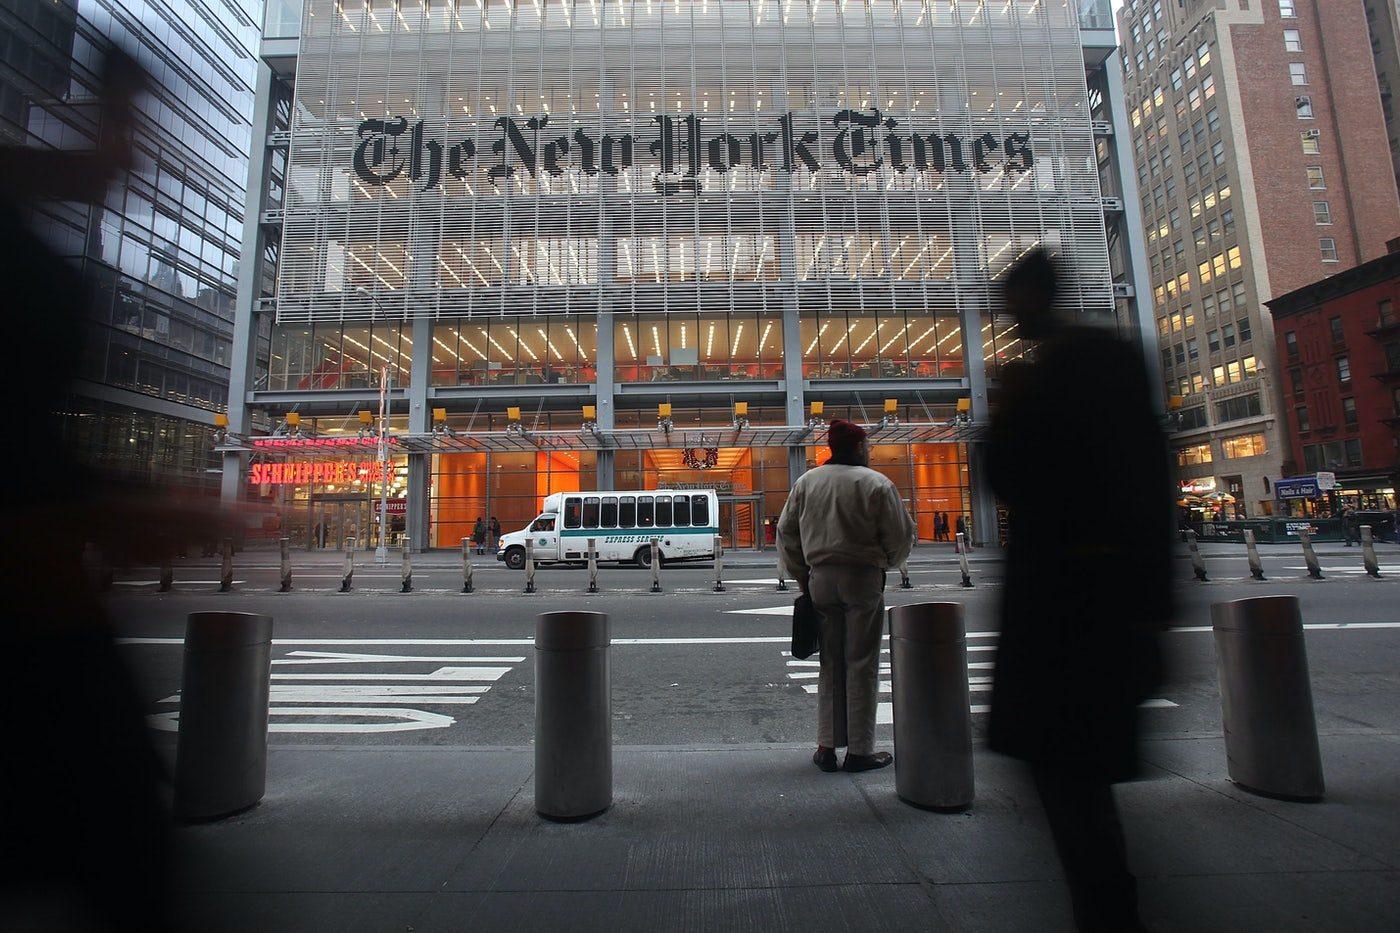 The New York Times building in Manhattan, seen from across the street.